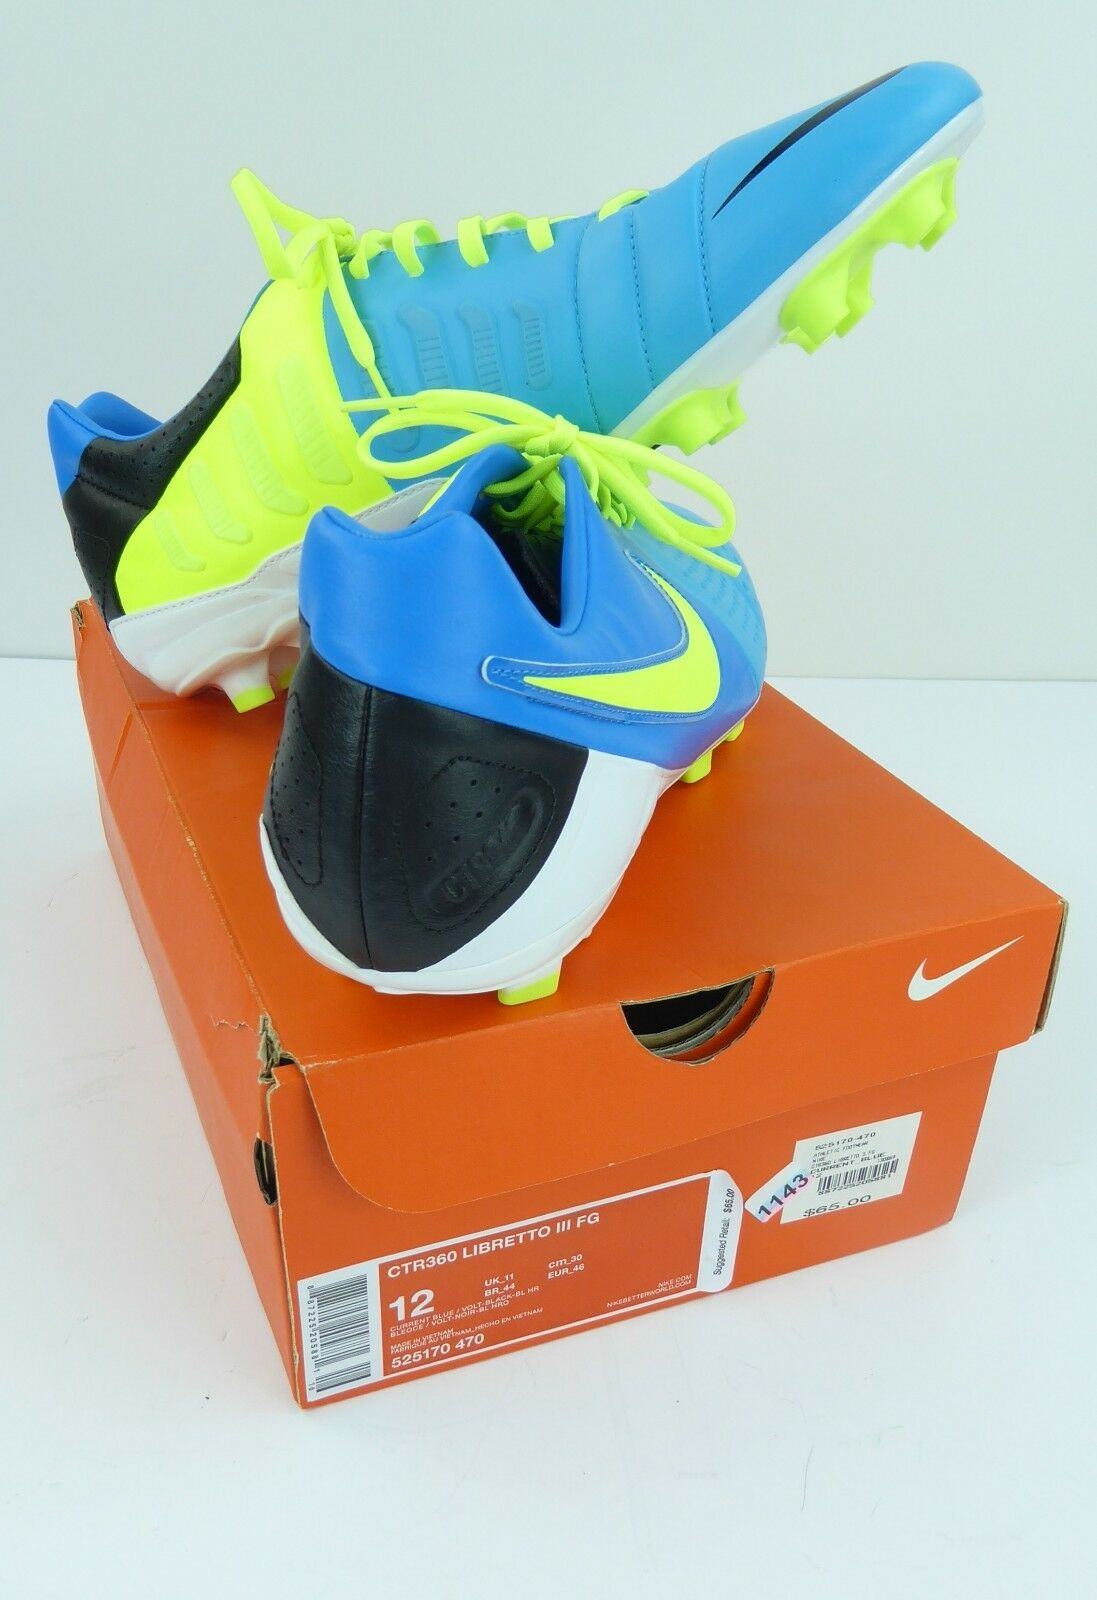 Nike Soccer shoes Libretto III FG CTR360 Mens Sz Sz Sz 12 Current bluee New Open Box 41617c